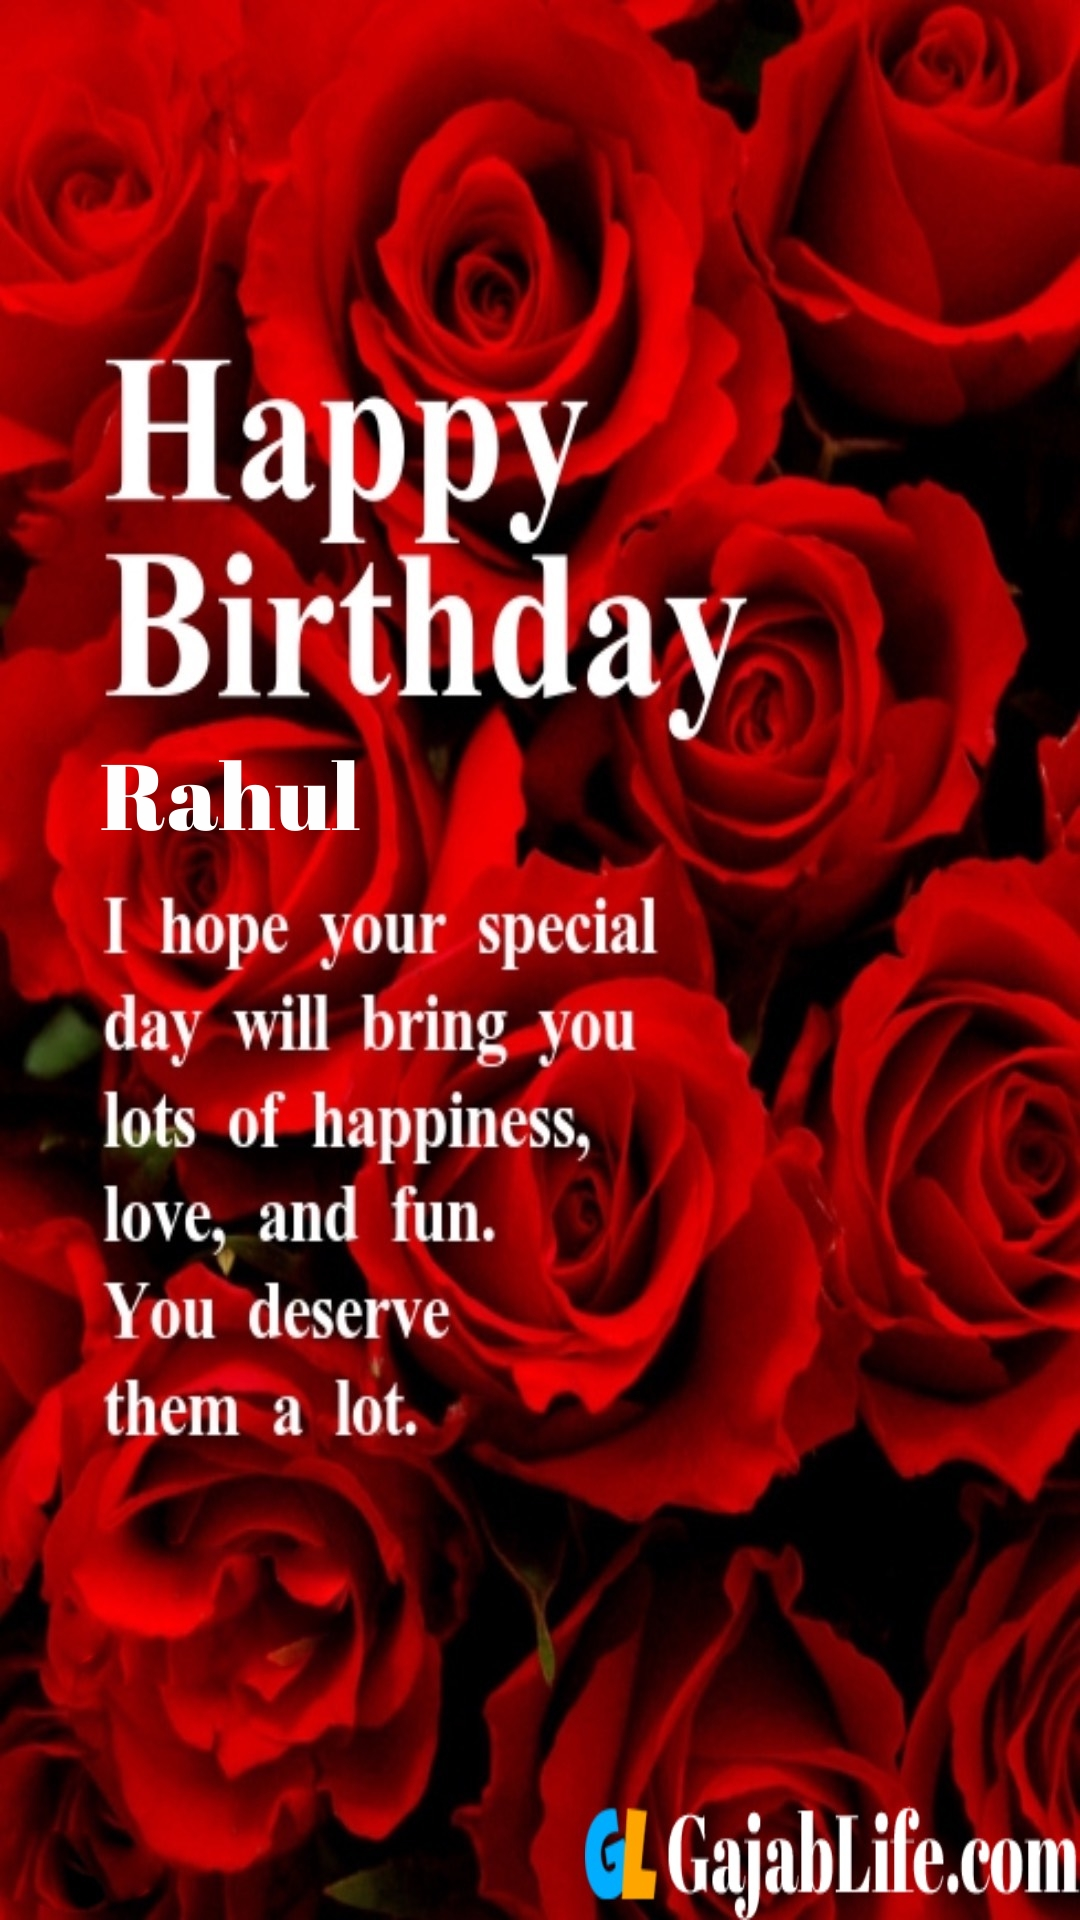 Free rahul Happy Birthday Cards With Name - February 3